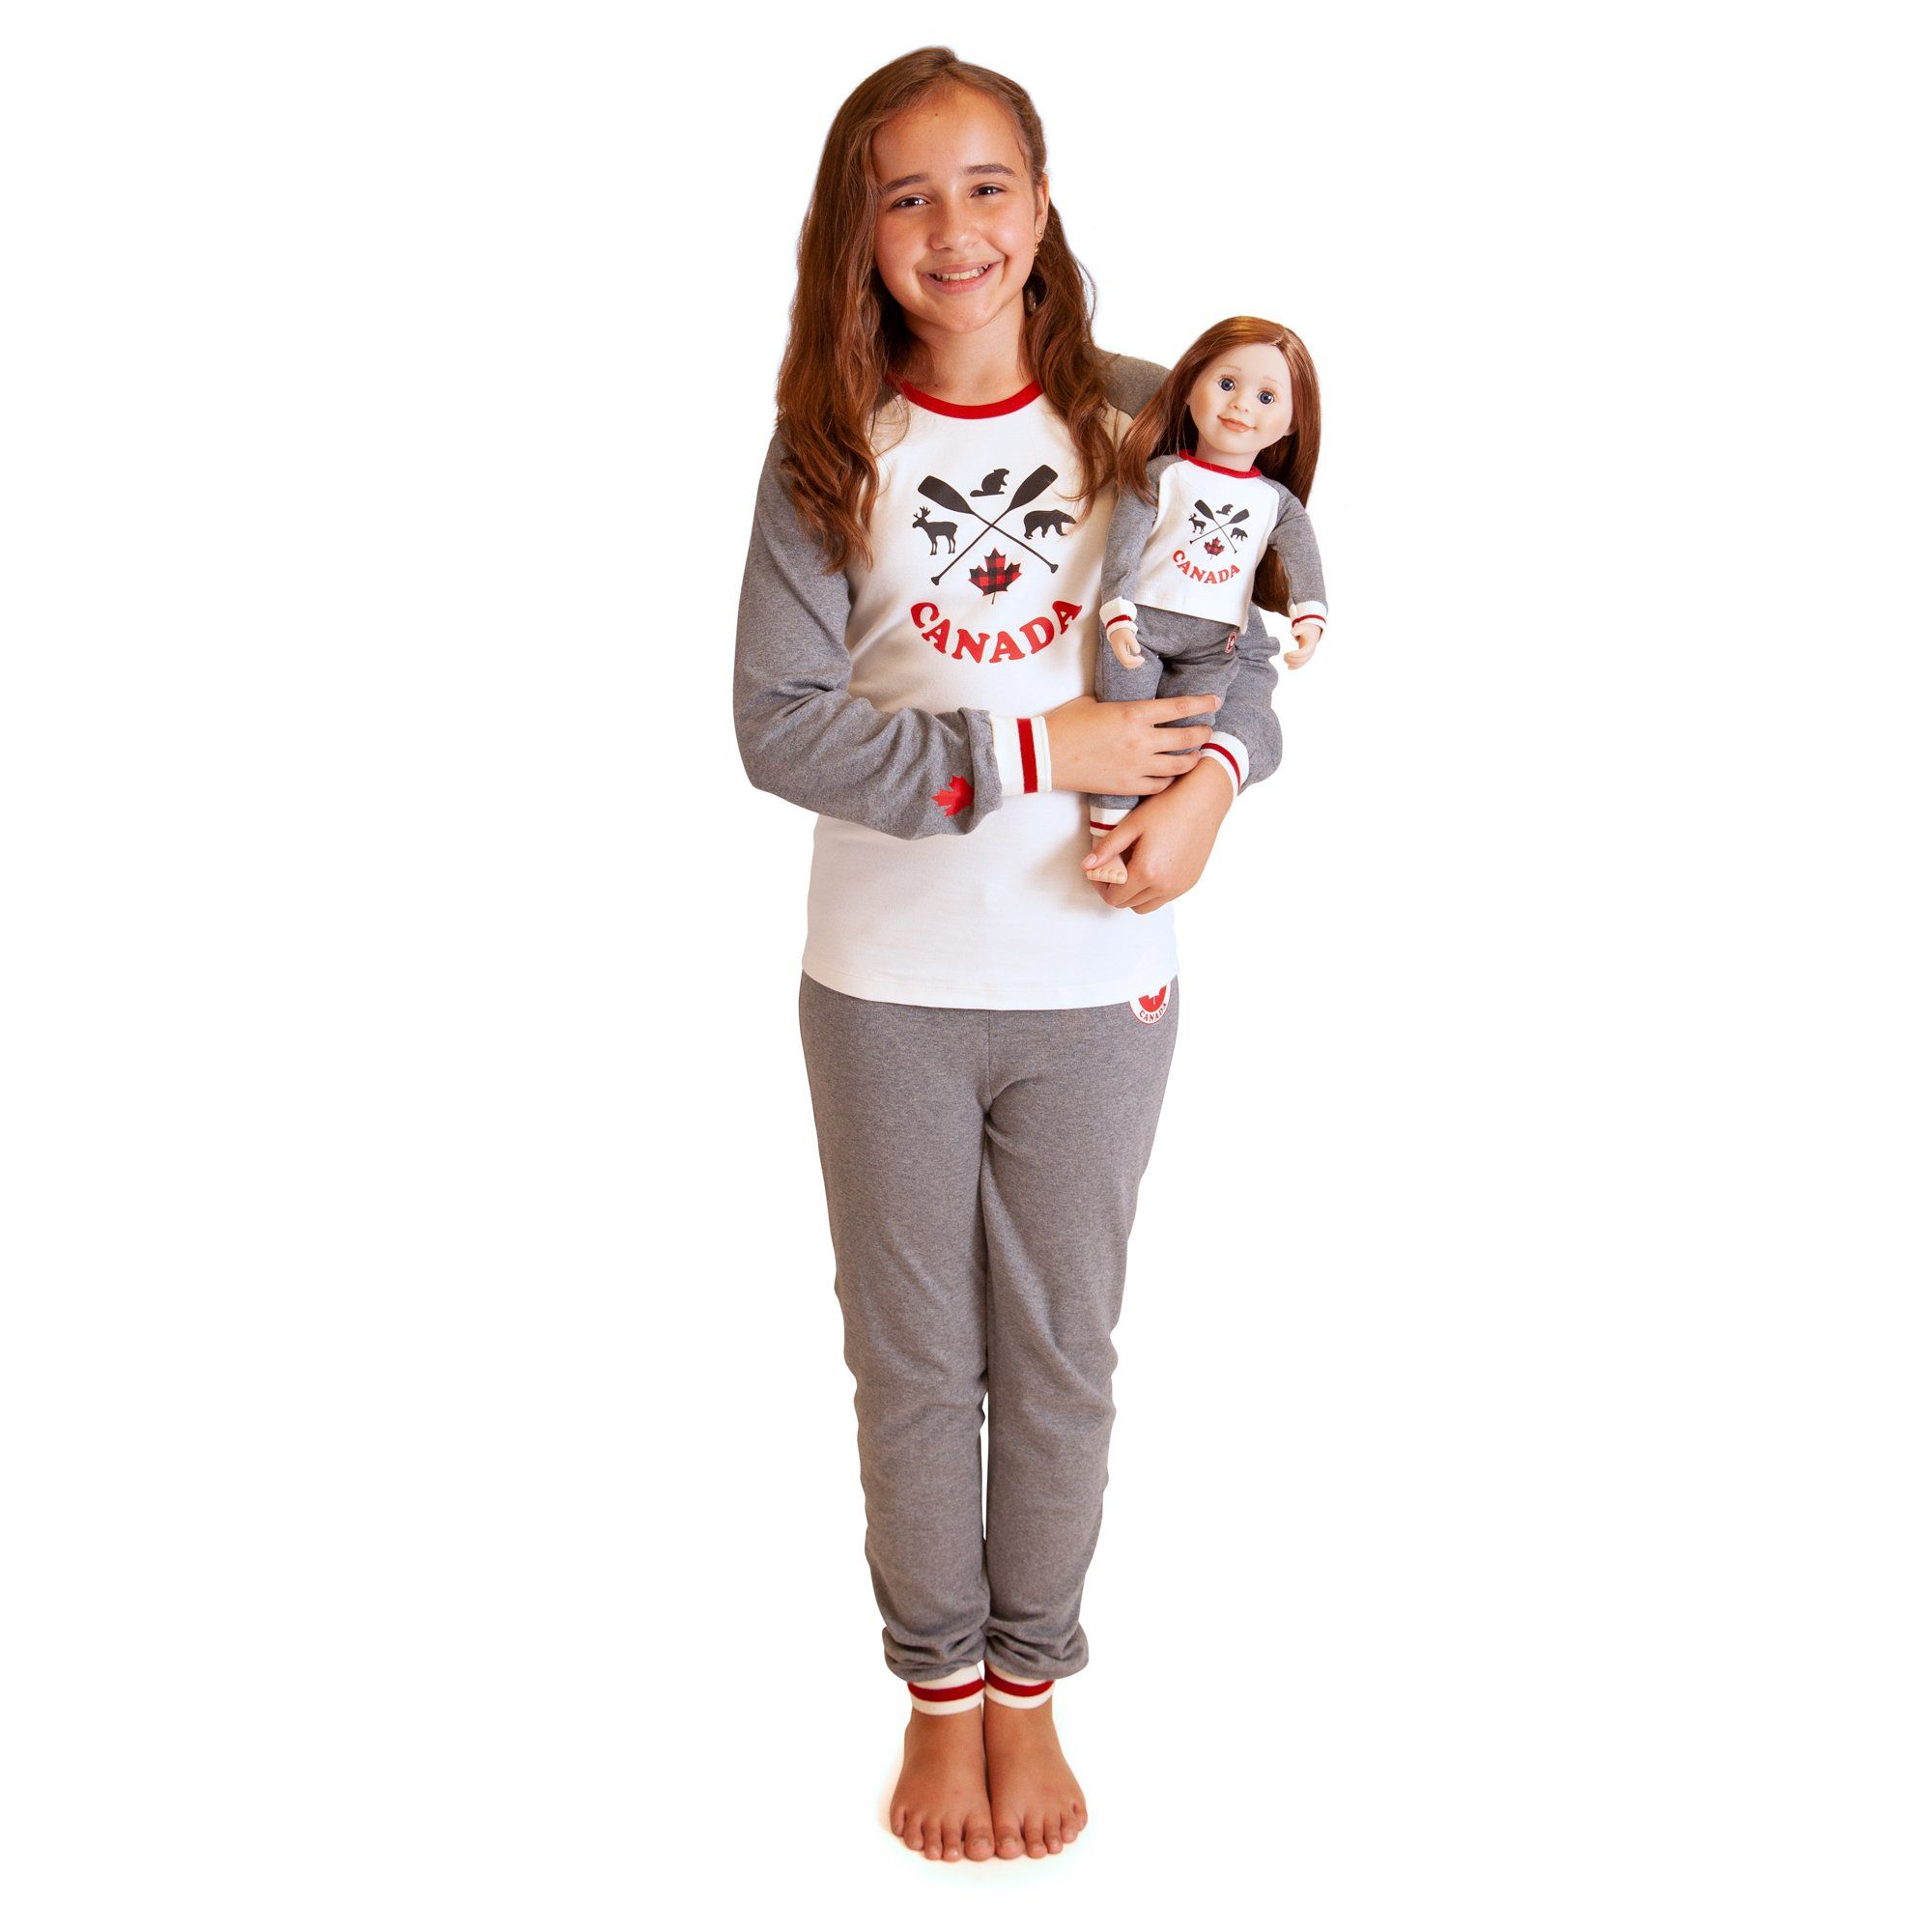 Iconic Canadian PJs for Kids